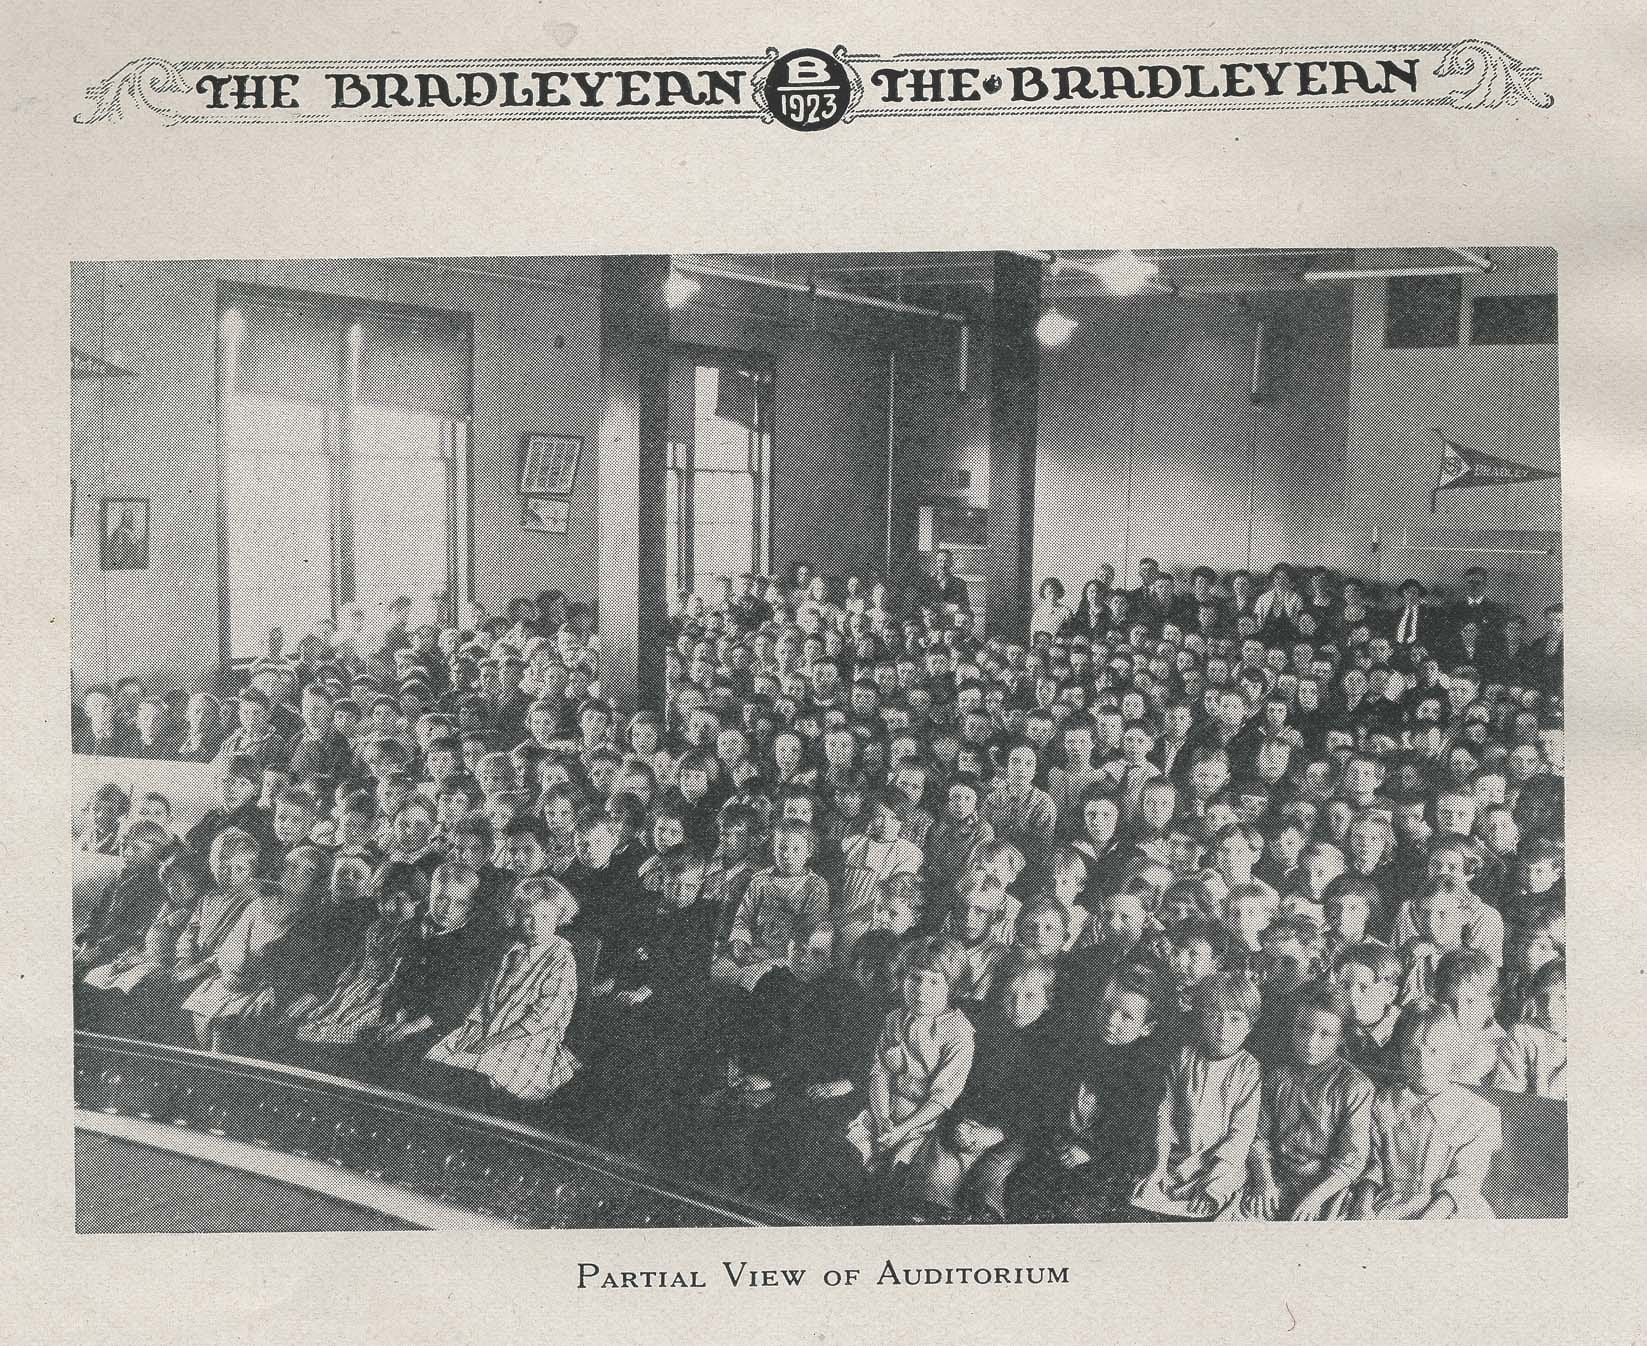 Bradleyean Year 1923 book page 8 Auditorium